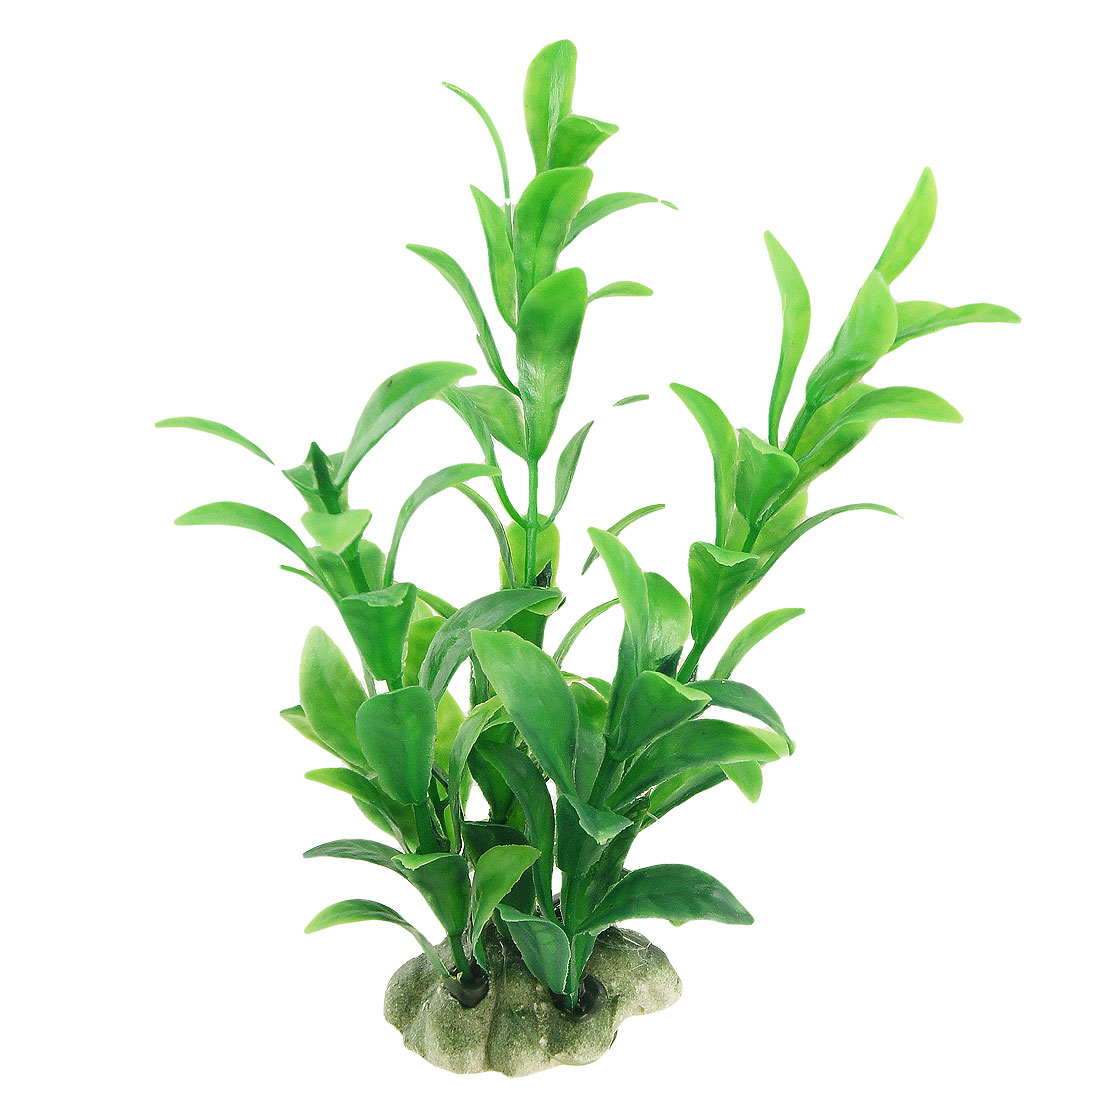 "Aquarium Simulated Green Leaves Blue Plastic Plants Ornament 5.7"" 2 Pcs"